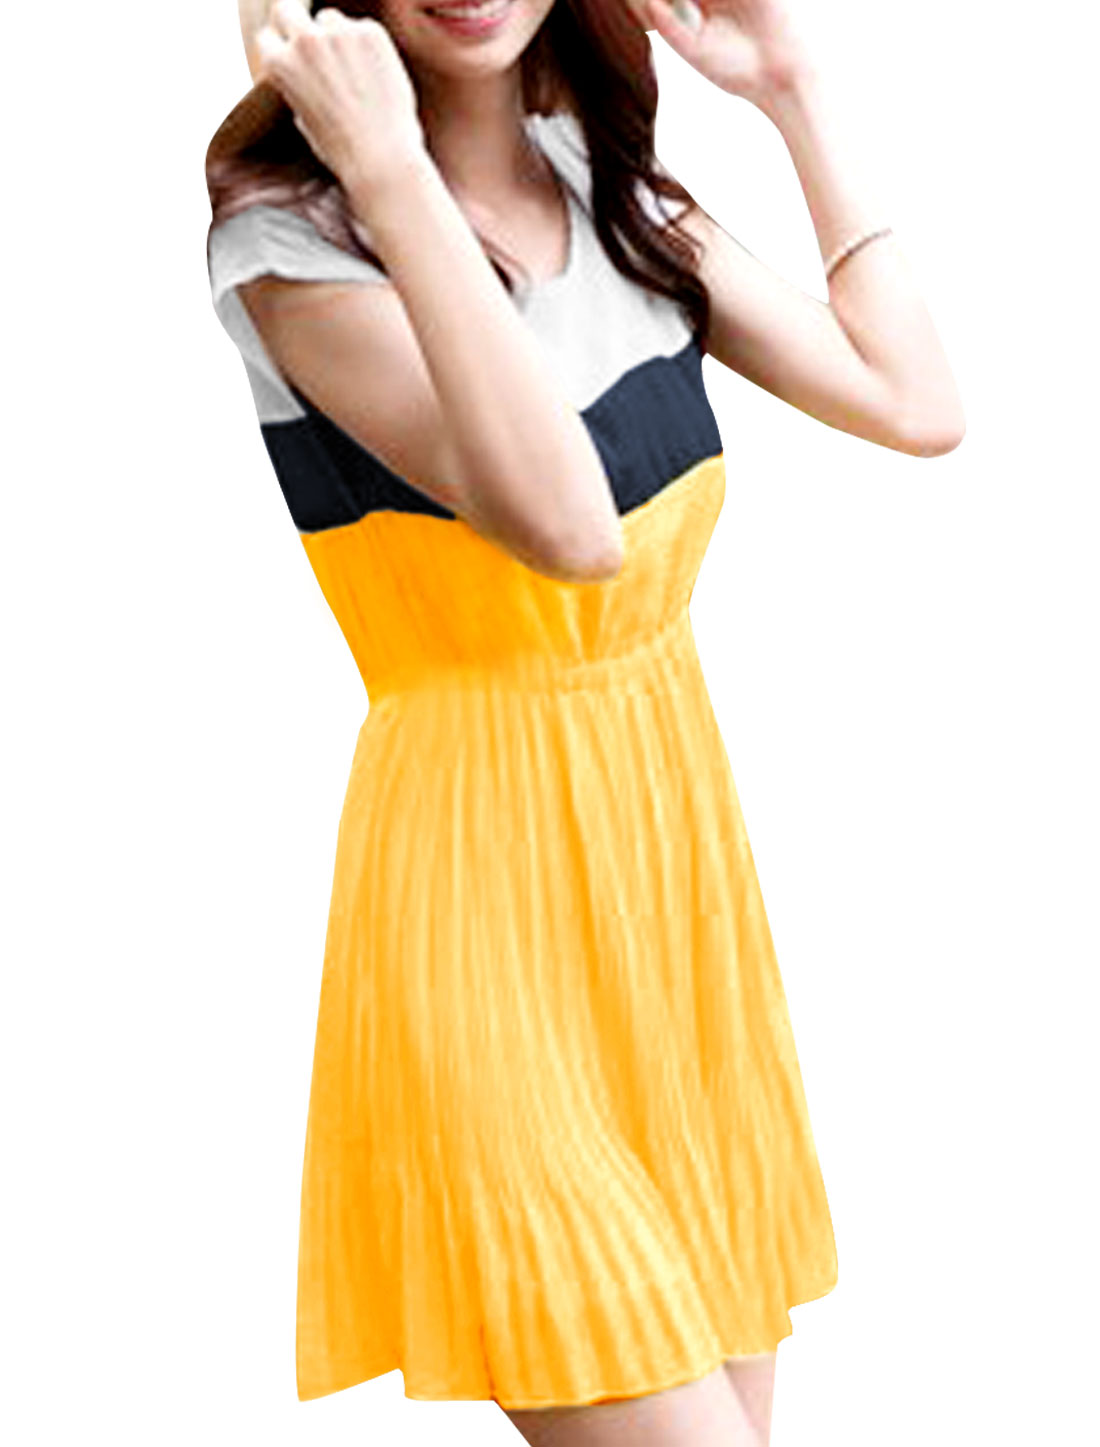 Woman Round Neck Cap Sleeve Contrast Color Splice Light Yellow White Mini Dress S